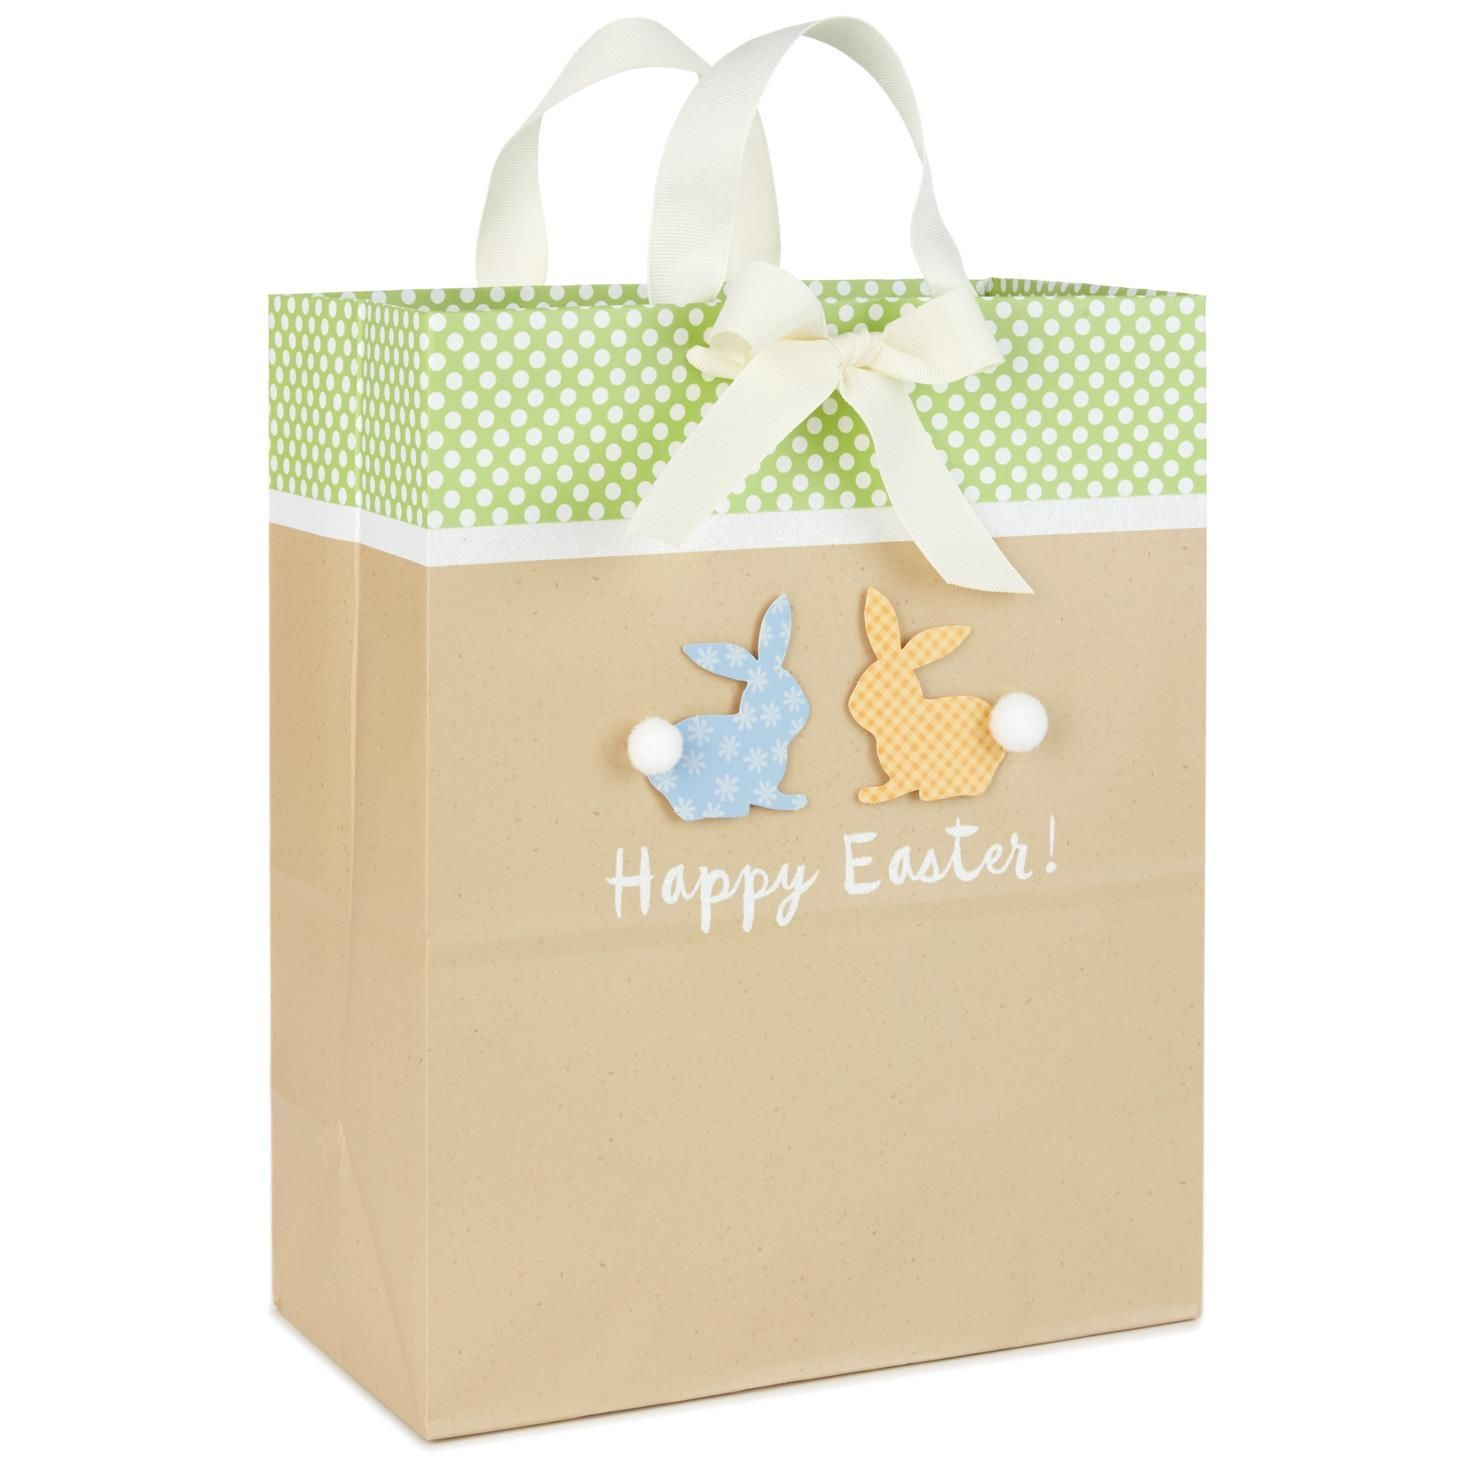 Gift wrap wrapping paper bags and trims hallmark easter and bunny and egg icons and pretty pastel colors are the perfect way to say happy easter with easter gift wrap and gift bags from hallmark negle Image collections